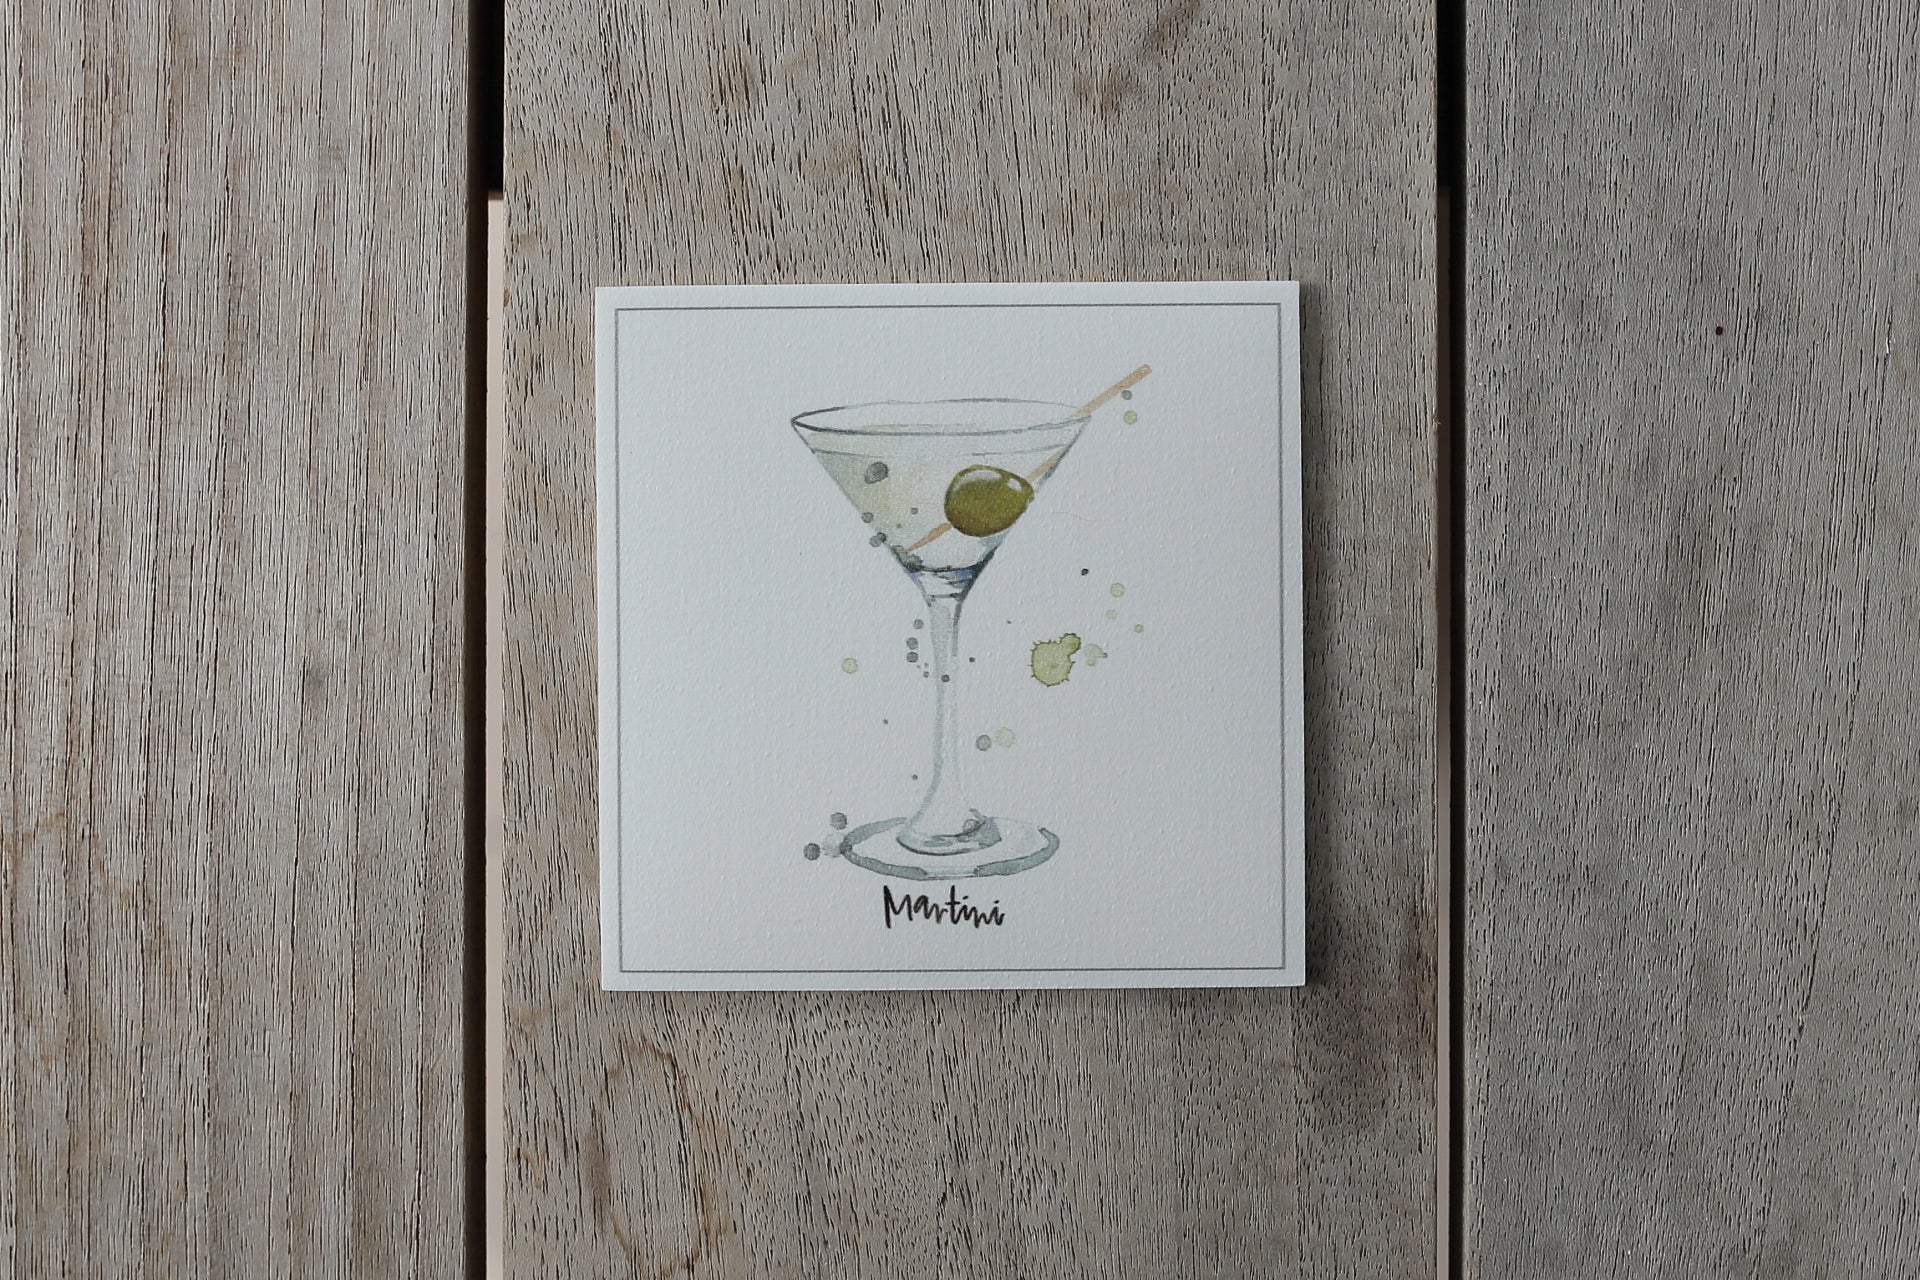 Collection cocktail - Sous-verres de Vinyle (4) - Cocktail Martini / Vinyl Coasters (4)